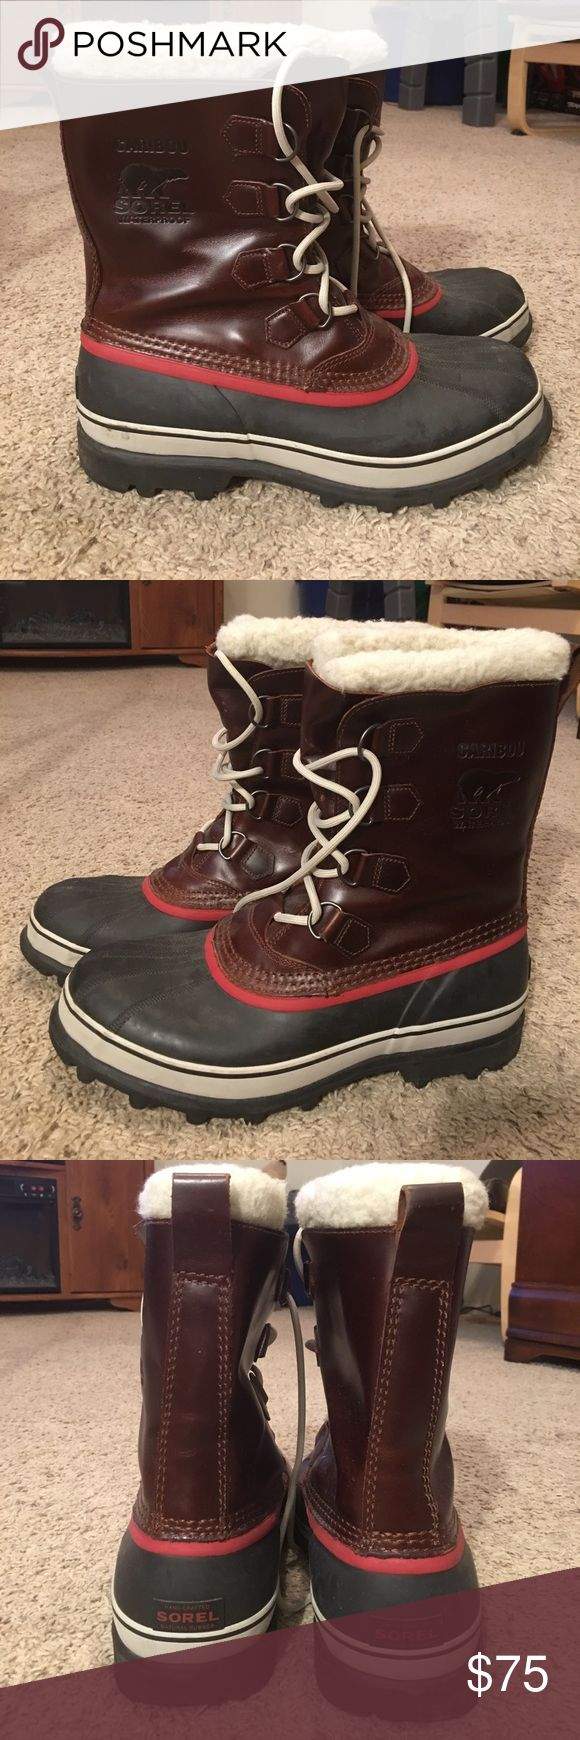 Men's Sorel Winter Boots Worn twice. Excellent condition! No longer live where they are needed. Sorel Shoes Boots